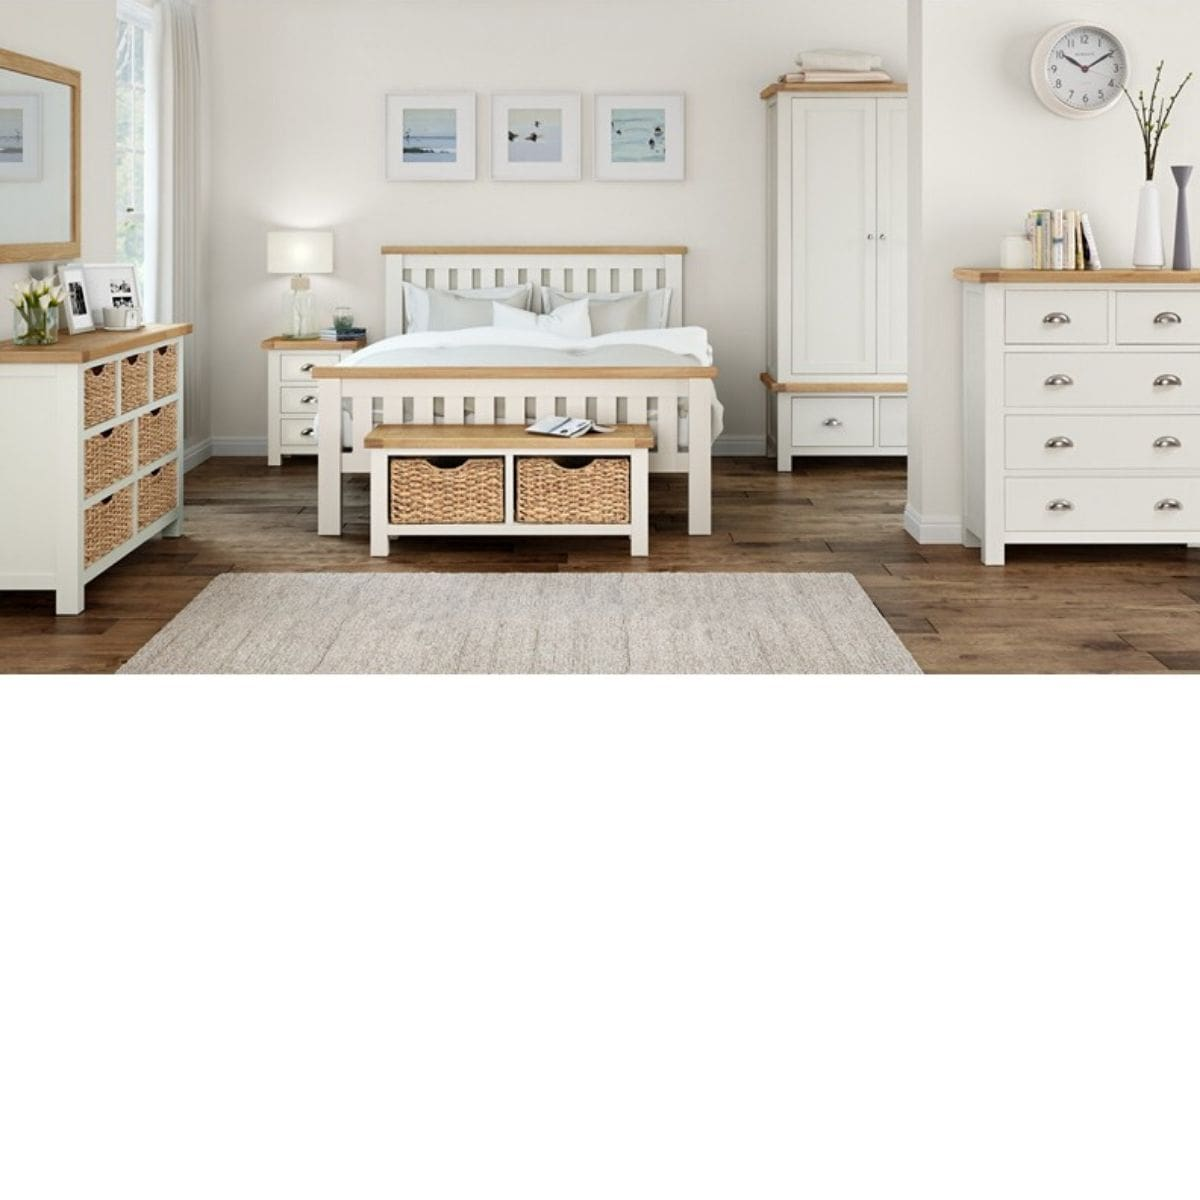 Sabina 5 Drawer Chest